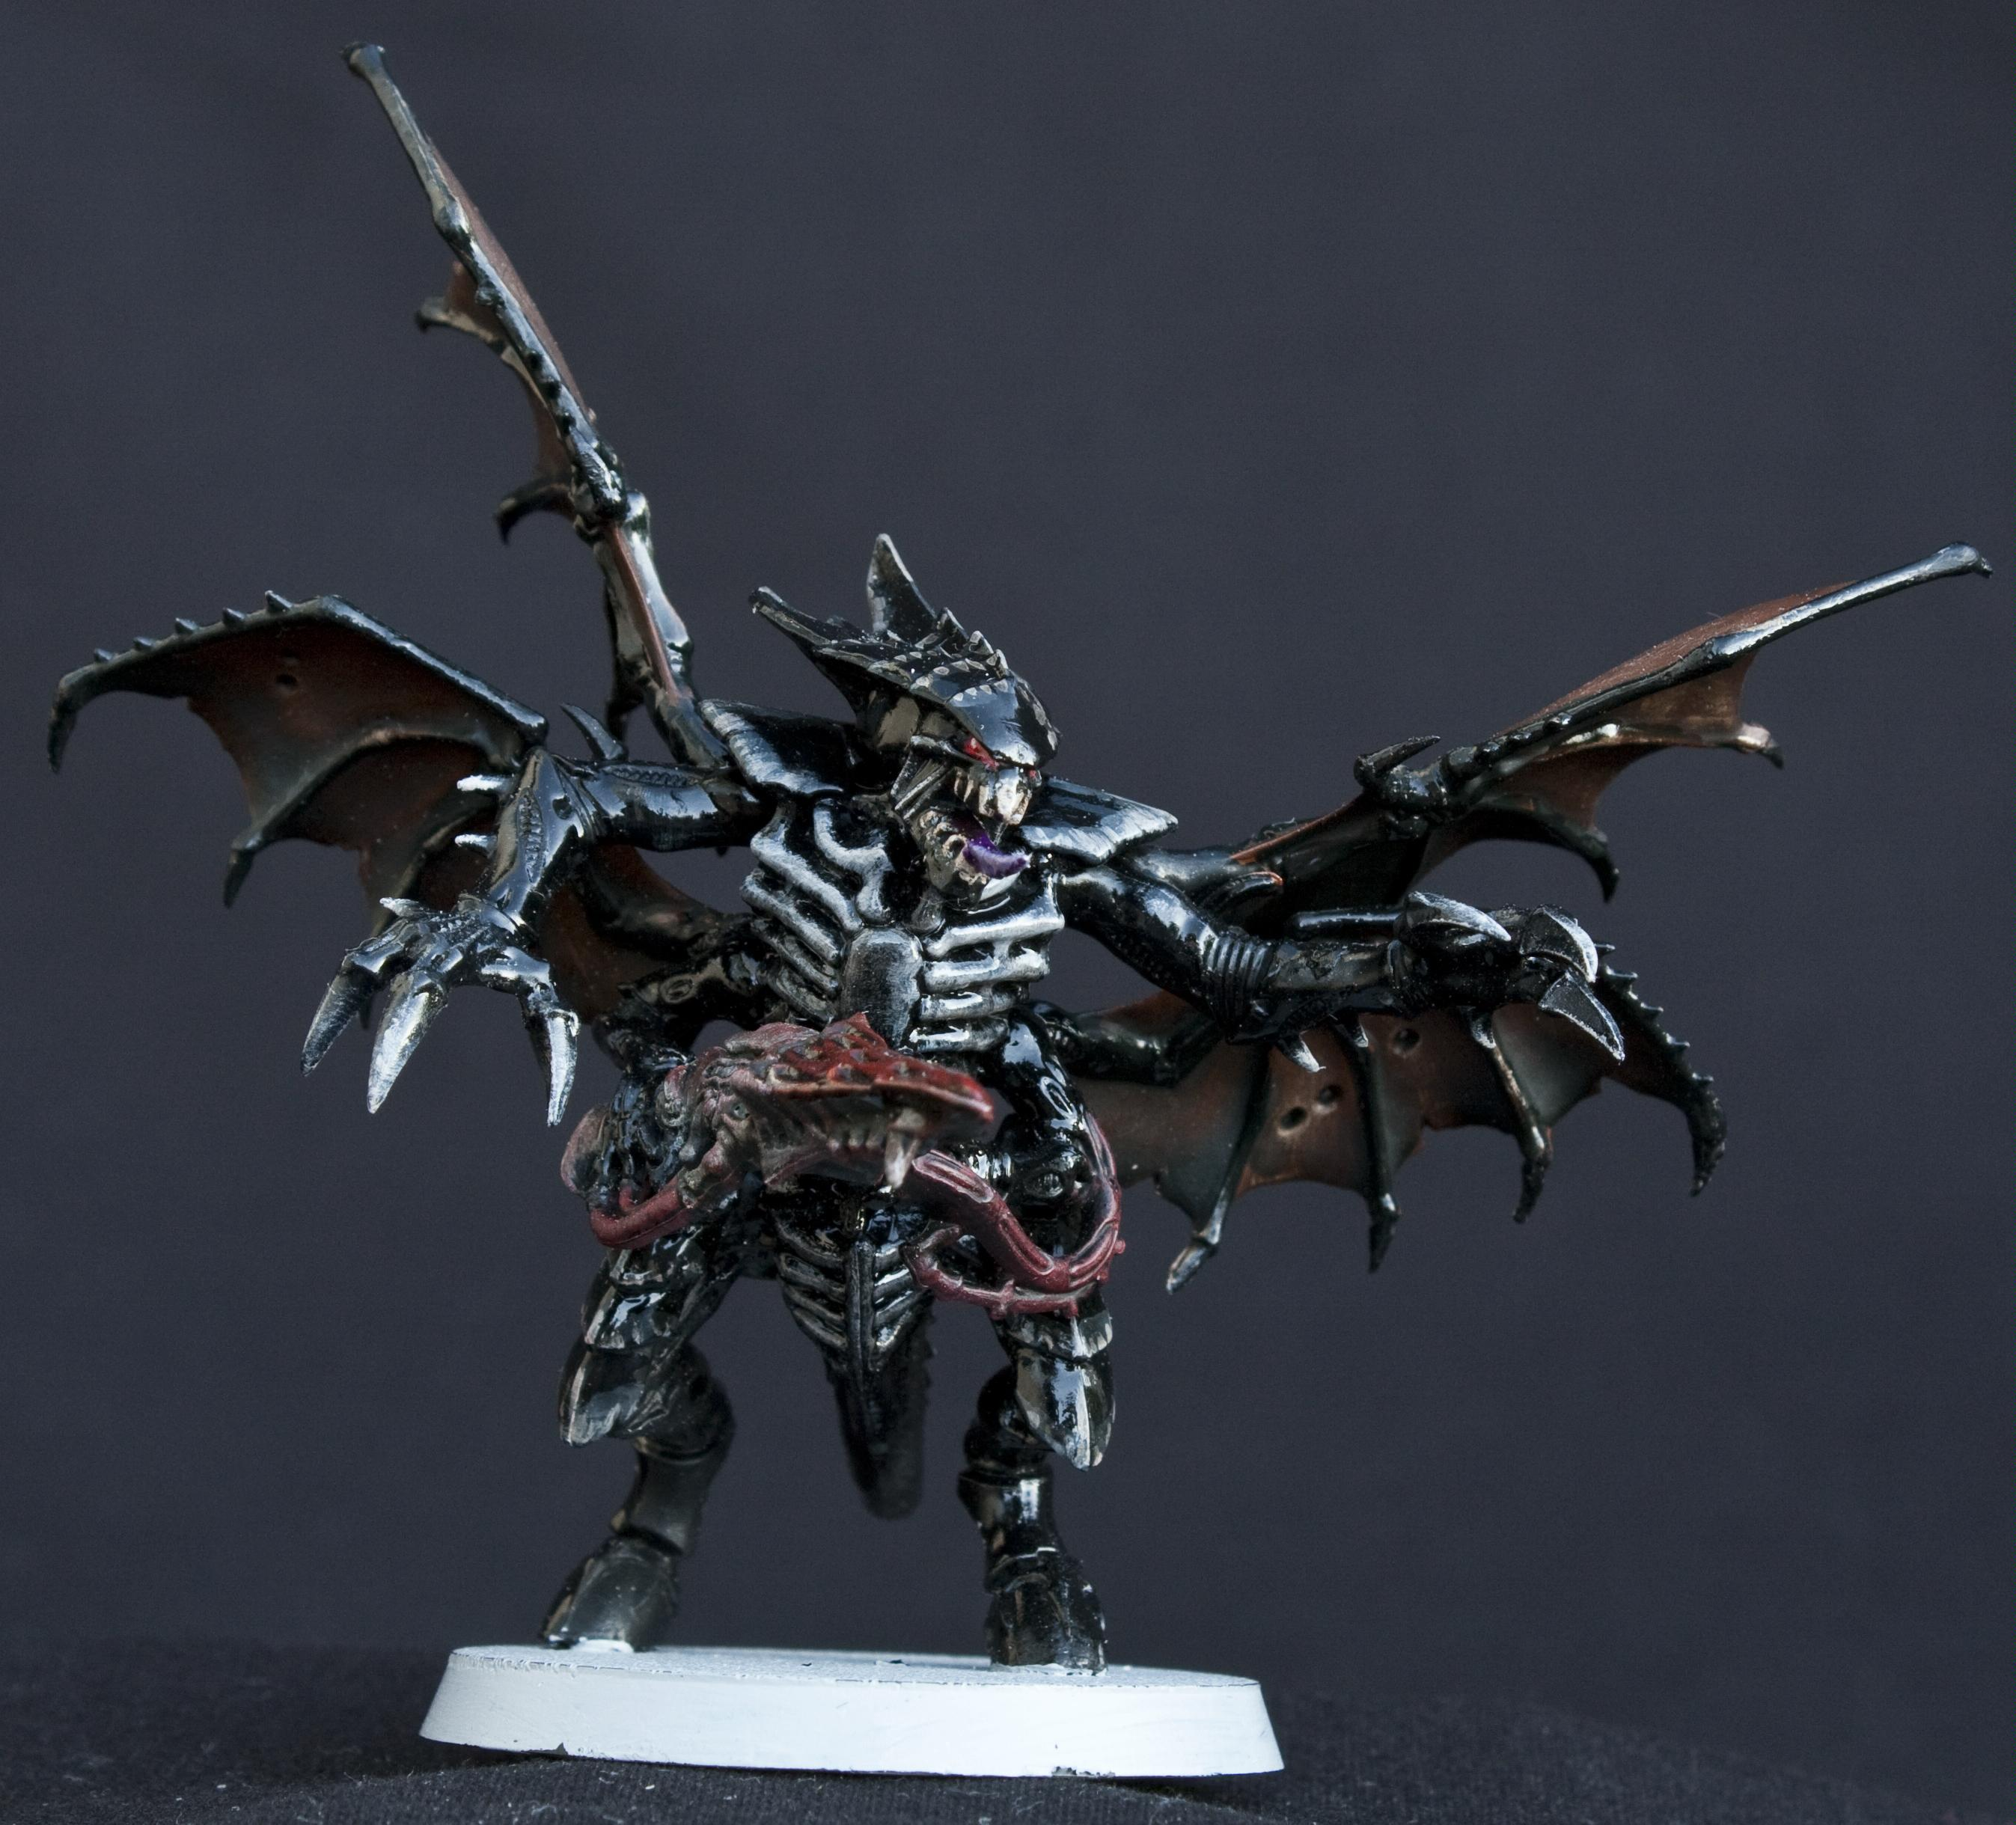 Black, Conversion, Glossy, Shrike, Shrikes, Tyranids, Warhammer 40,000, Winged